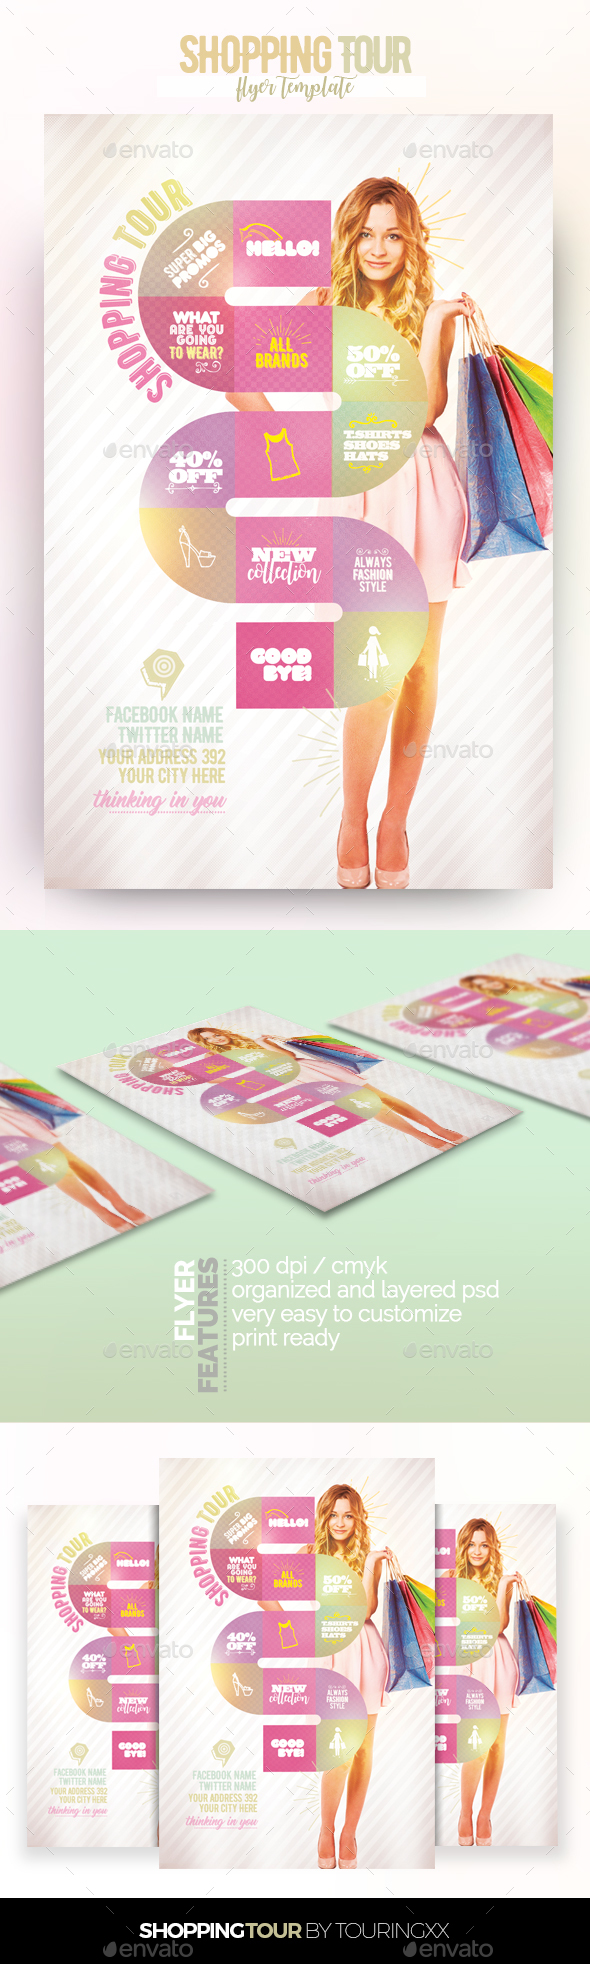 Shopping Tour Flyer Template - Flyers Print Templates